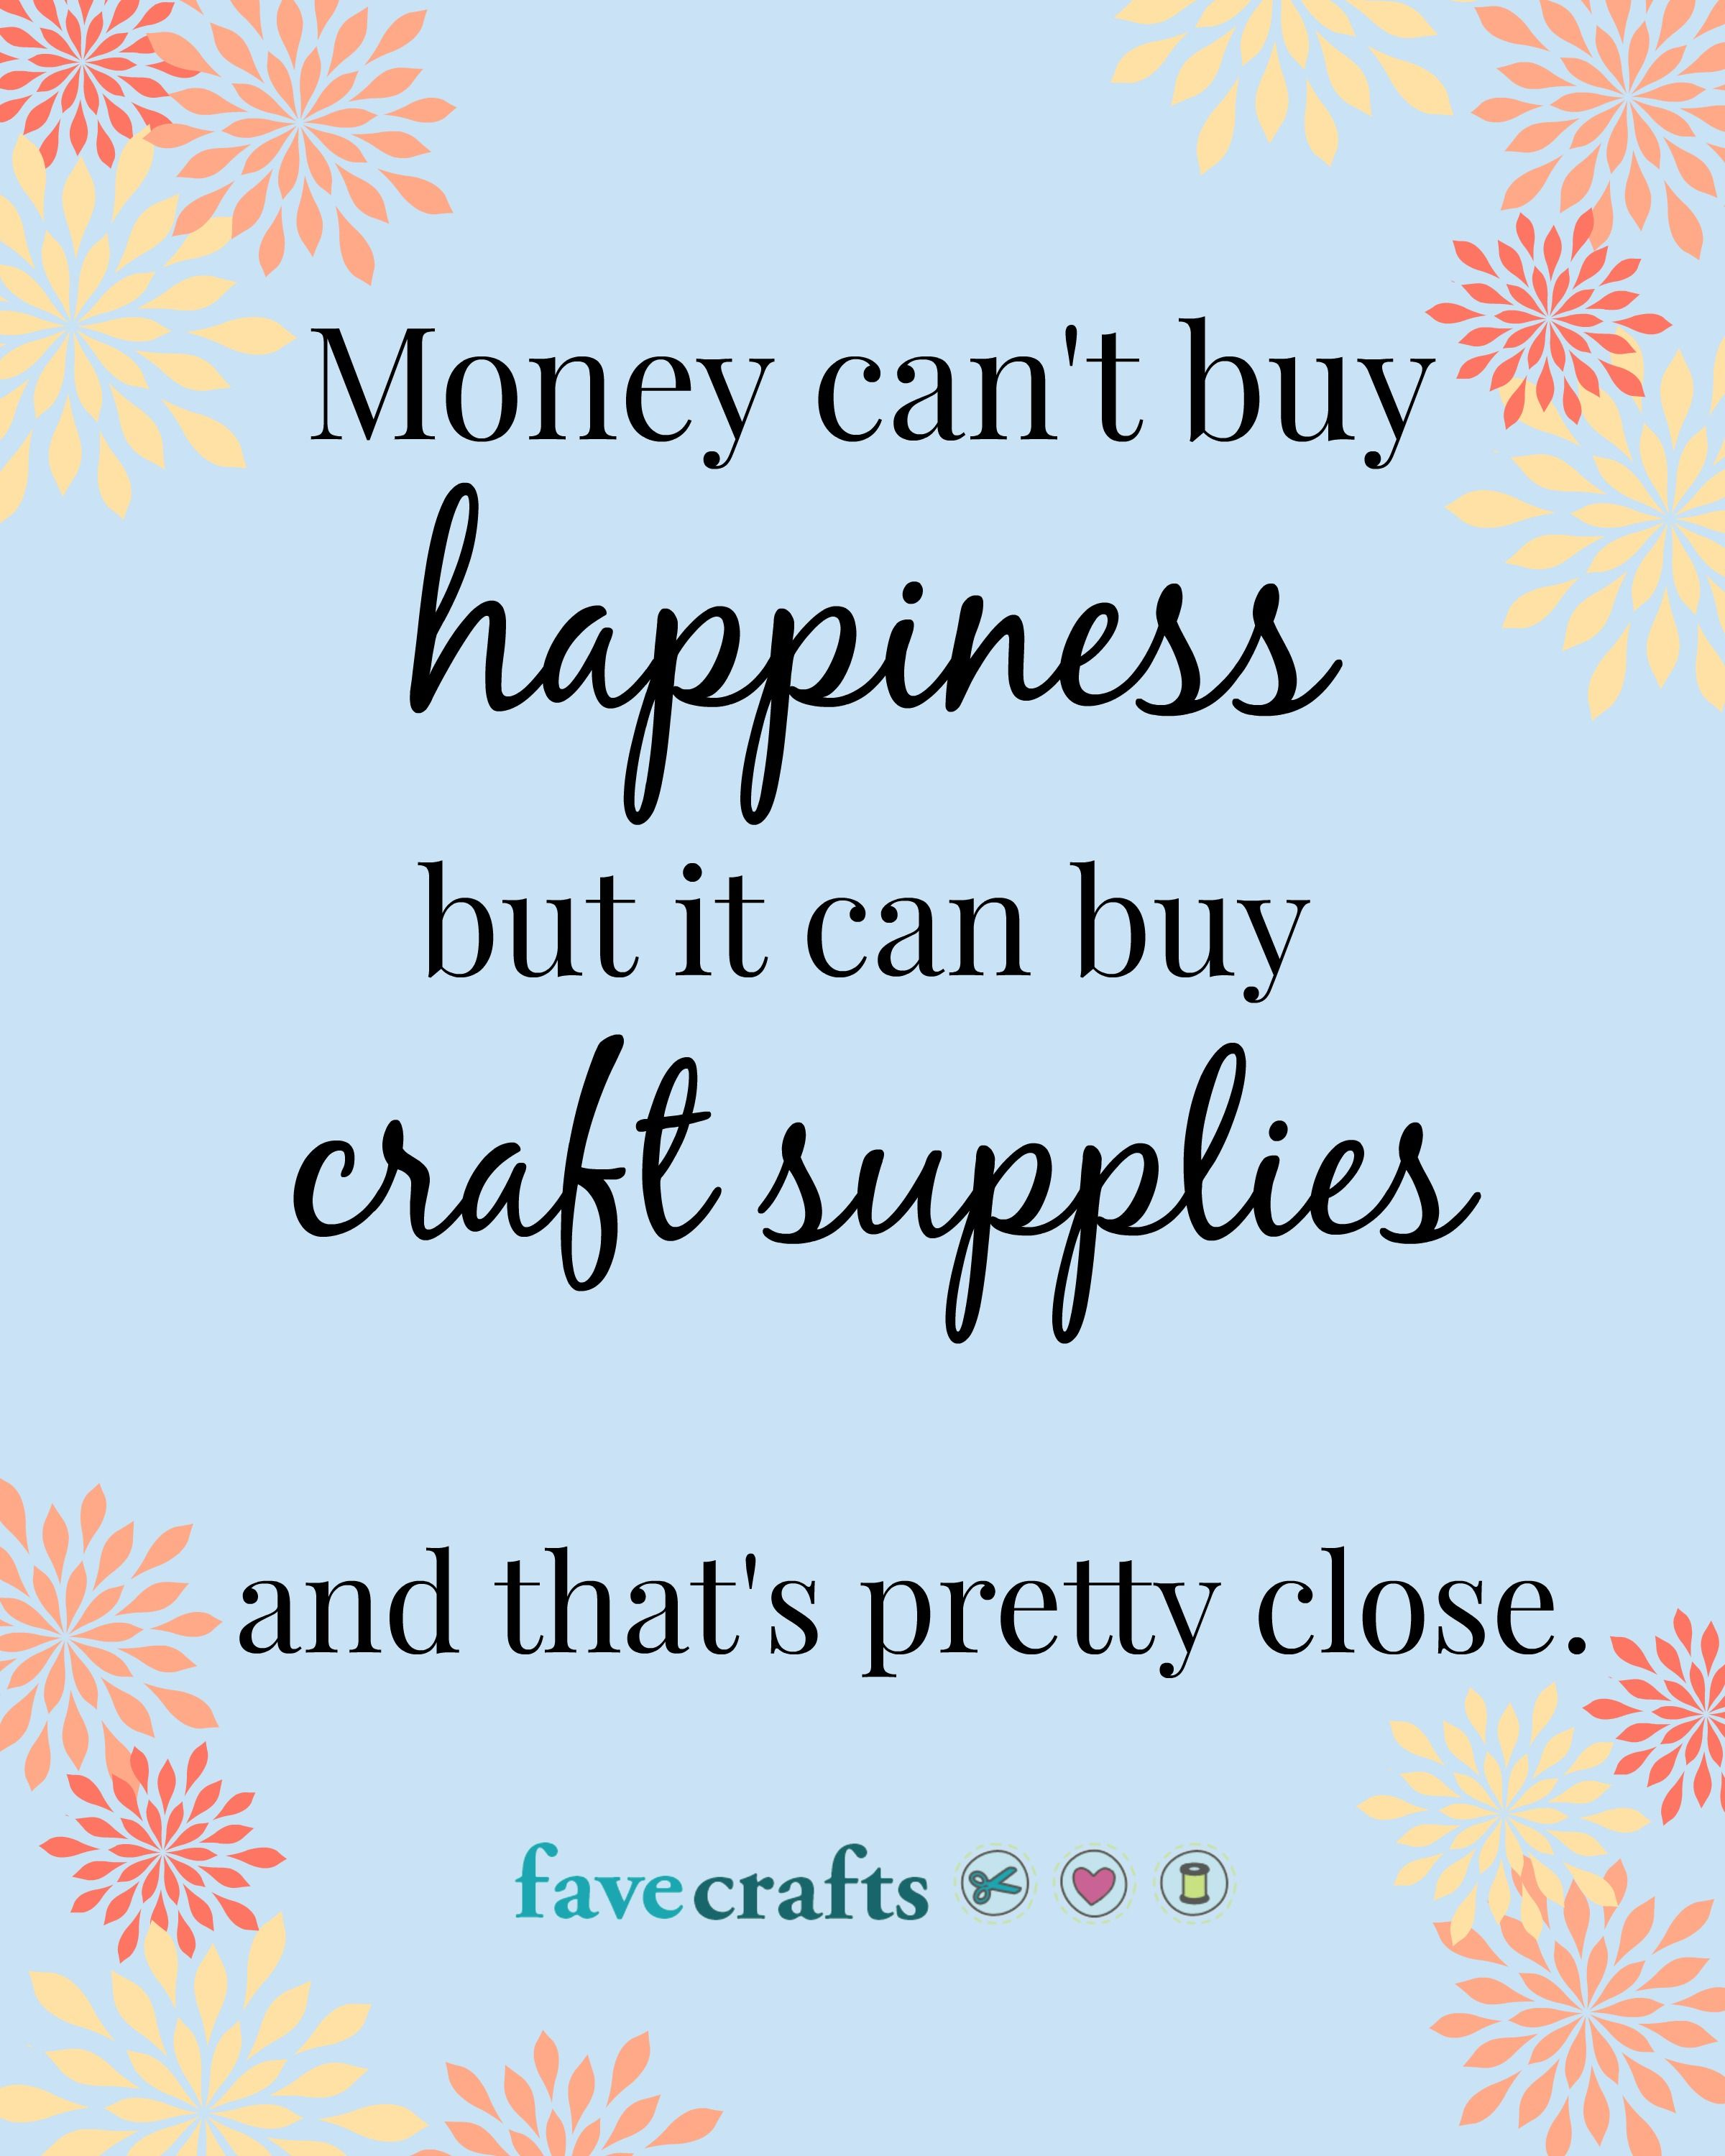 Favecrafts 1000s Of Free Craft Projects Patterns And More Craft Quotes Scrapbook Quotes Craft Memes